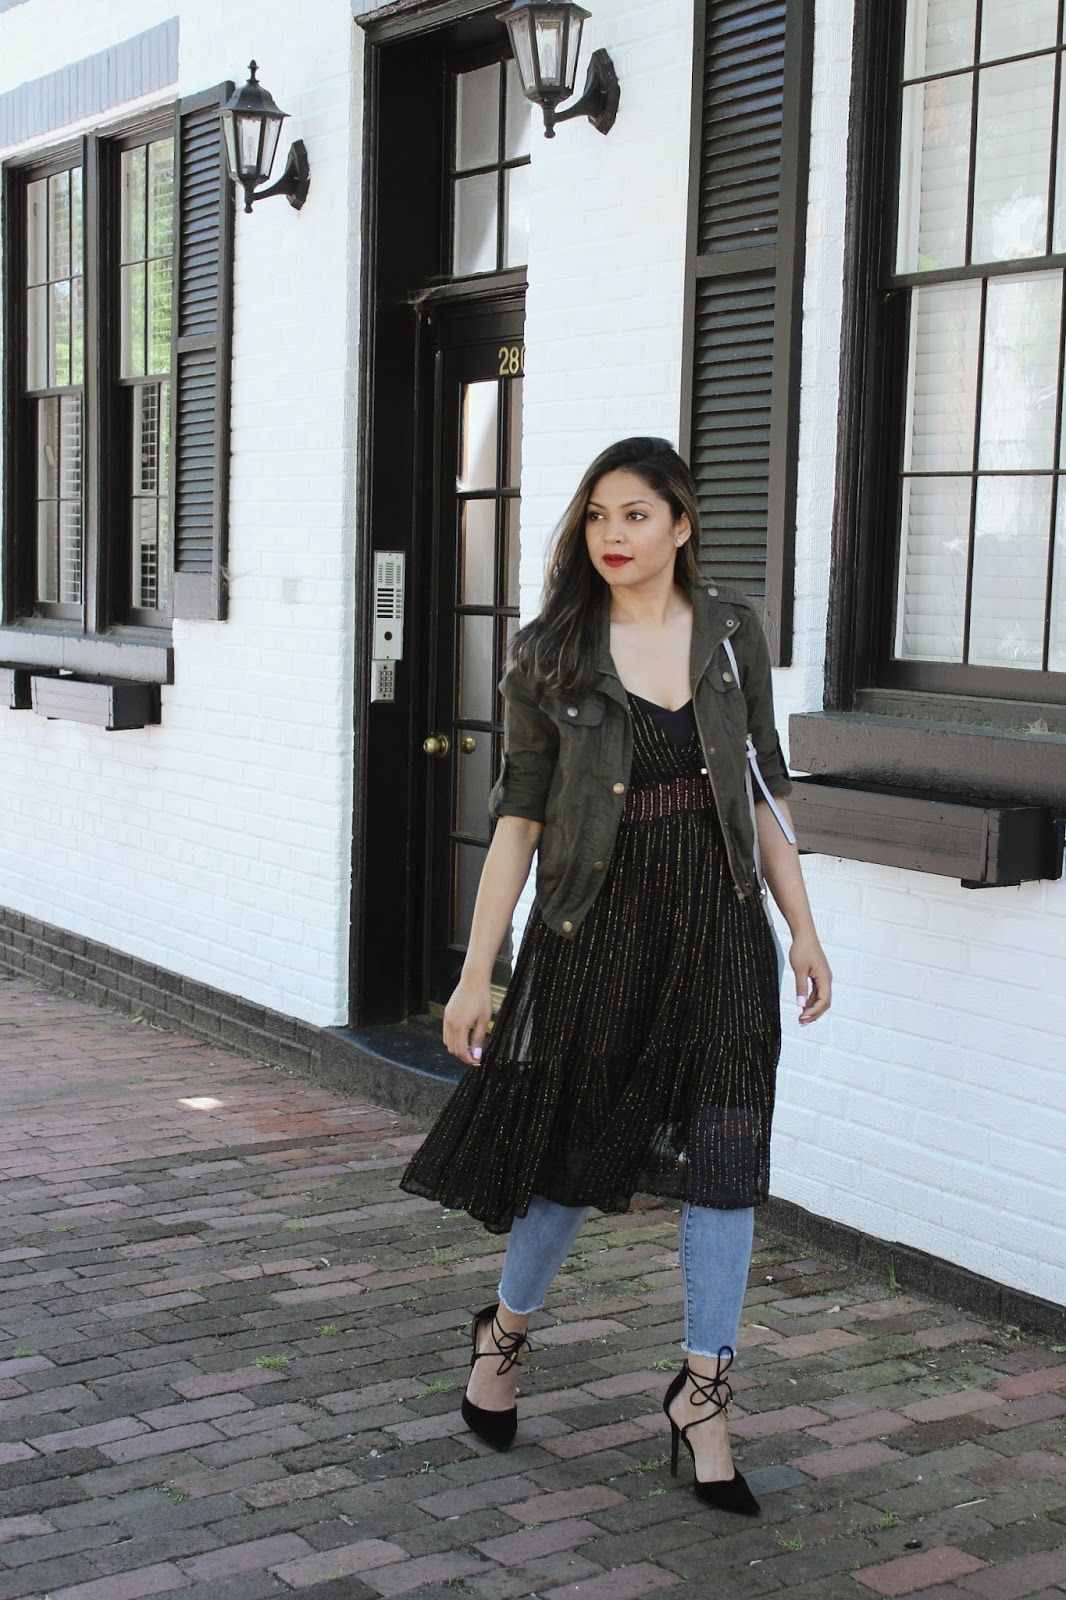 Dress Over Jeans Outfit Black Lace Up Heels Street Style Lbd Ootd Outfit Fashion Street Myriad Musings Li Fashion Dress Over Jeans Black Lace Up Heels [ 1600 x 1066 Pixel ]